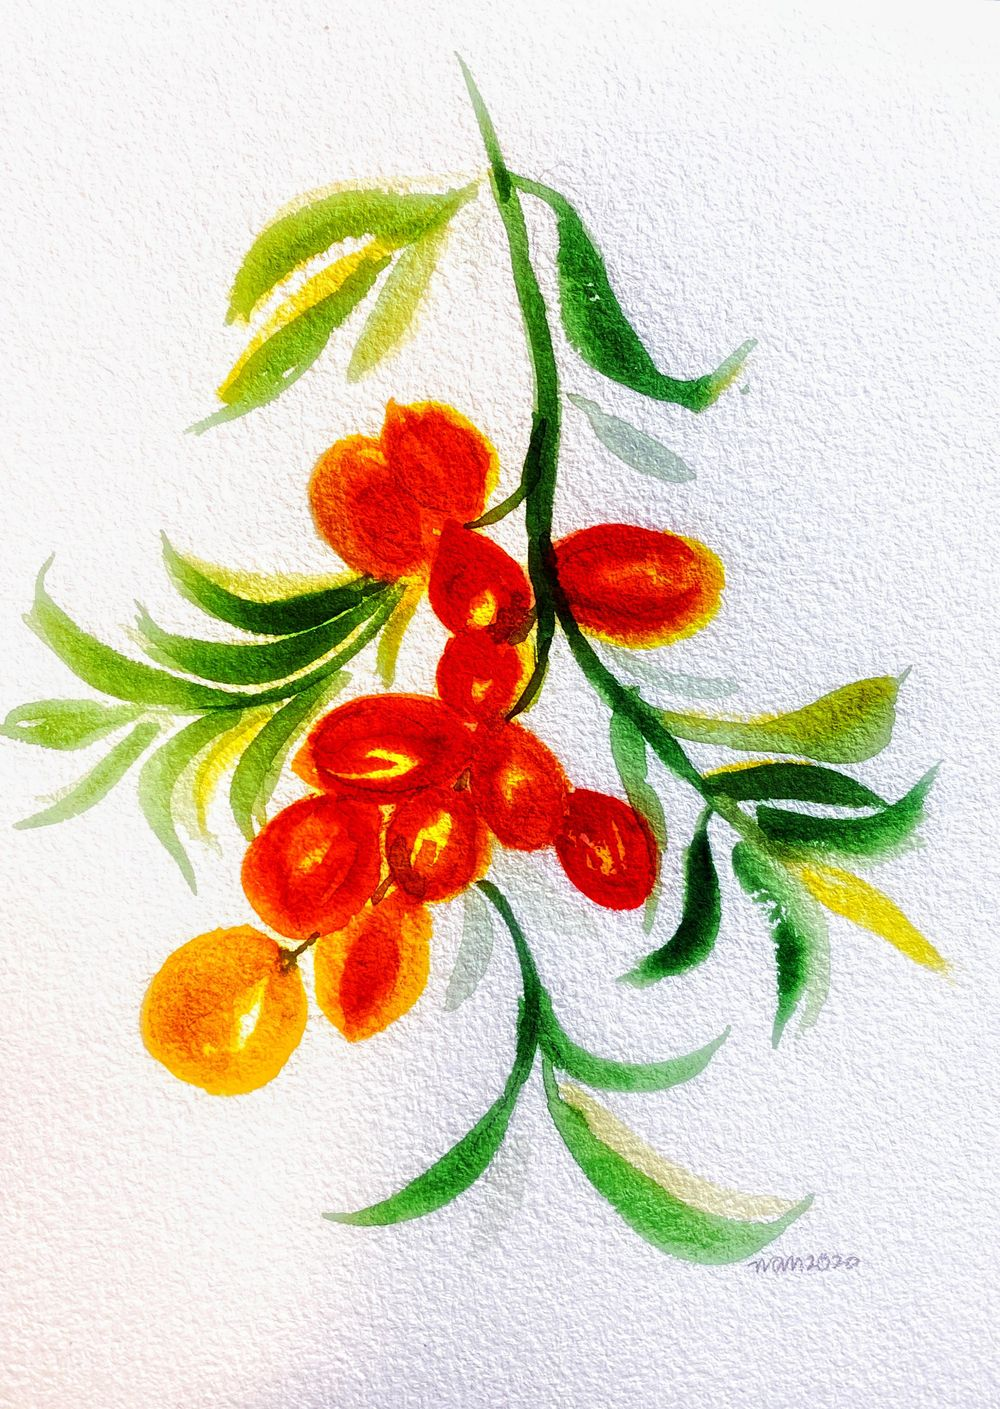 INCredible Poppies, Buckthorn, Squirrel - image 2 - student project